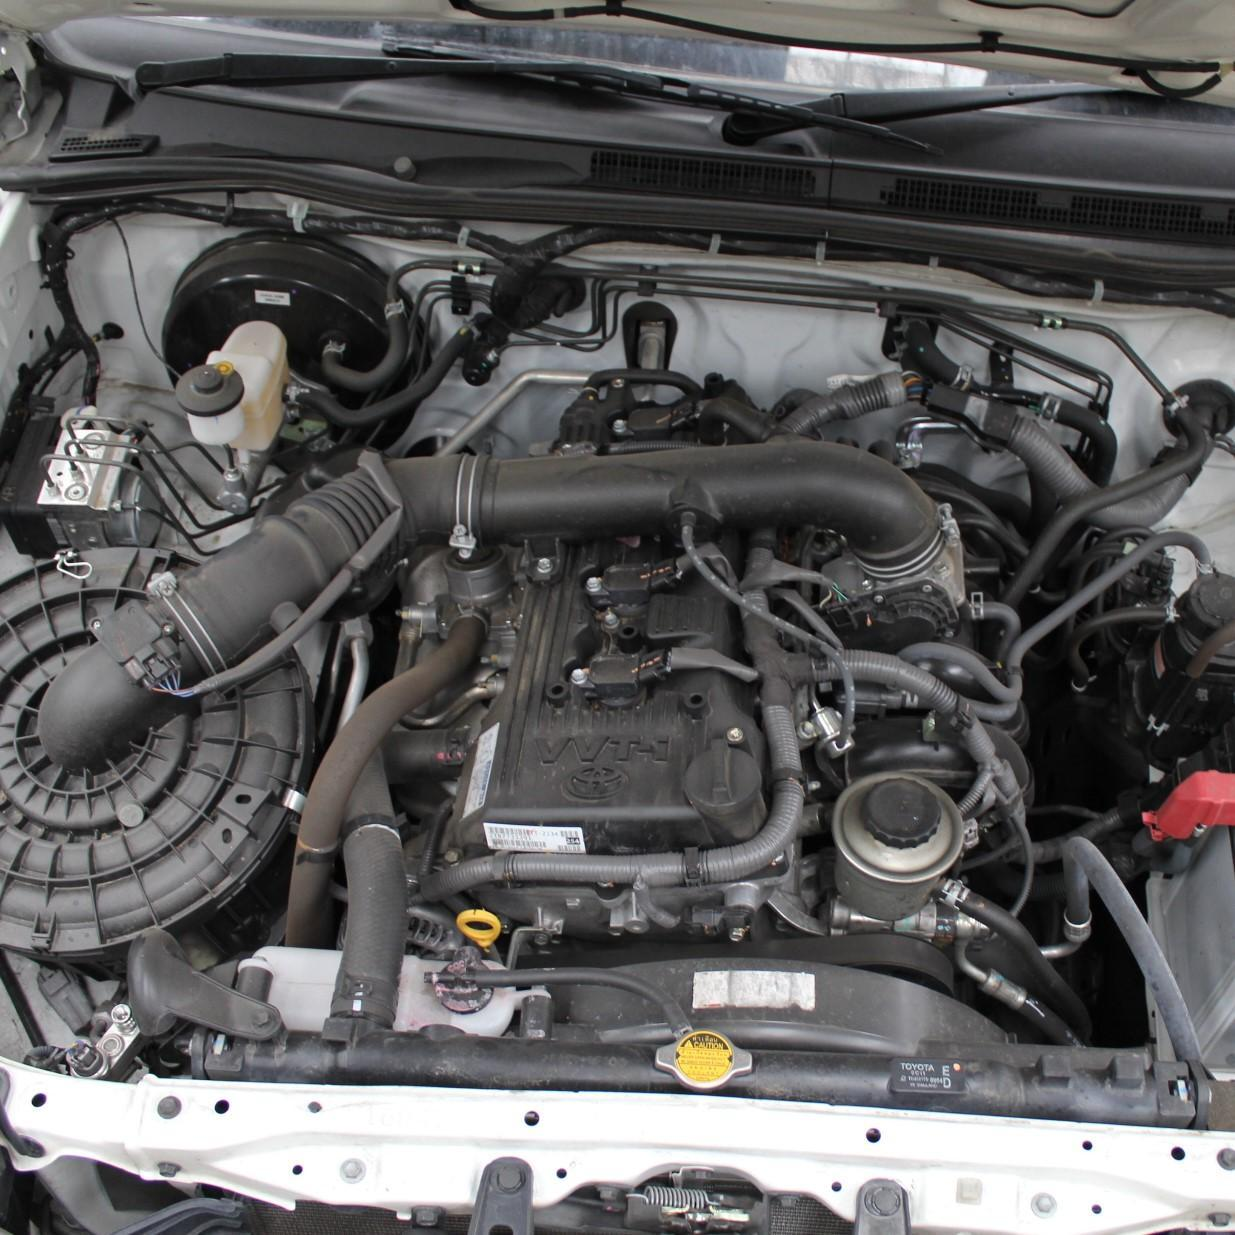 TOYOTA HILUX, Trans/Gearbox, AUTO, 2WD, PETROL, 2.7, 2TR-FE, 4 SPEED, A343E CODE, 03/05-08/15